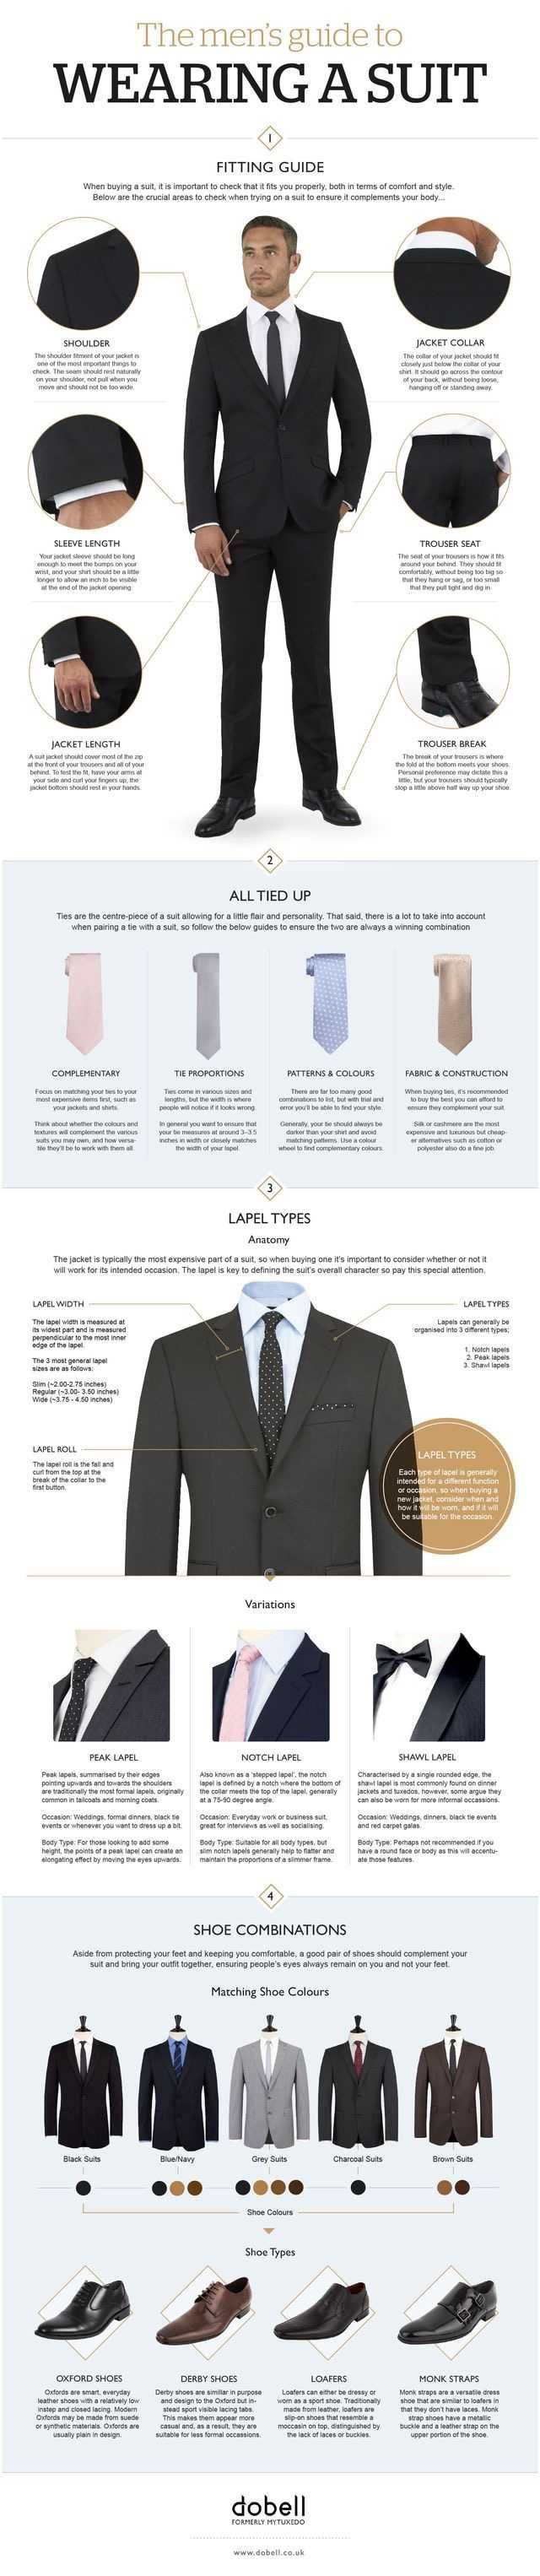 How to iron the shirt properly. Tips for young housewives and lonely men